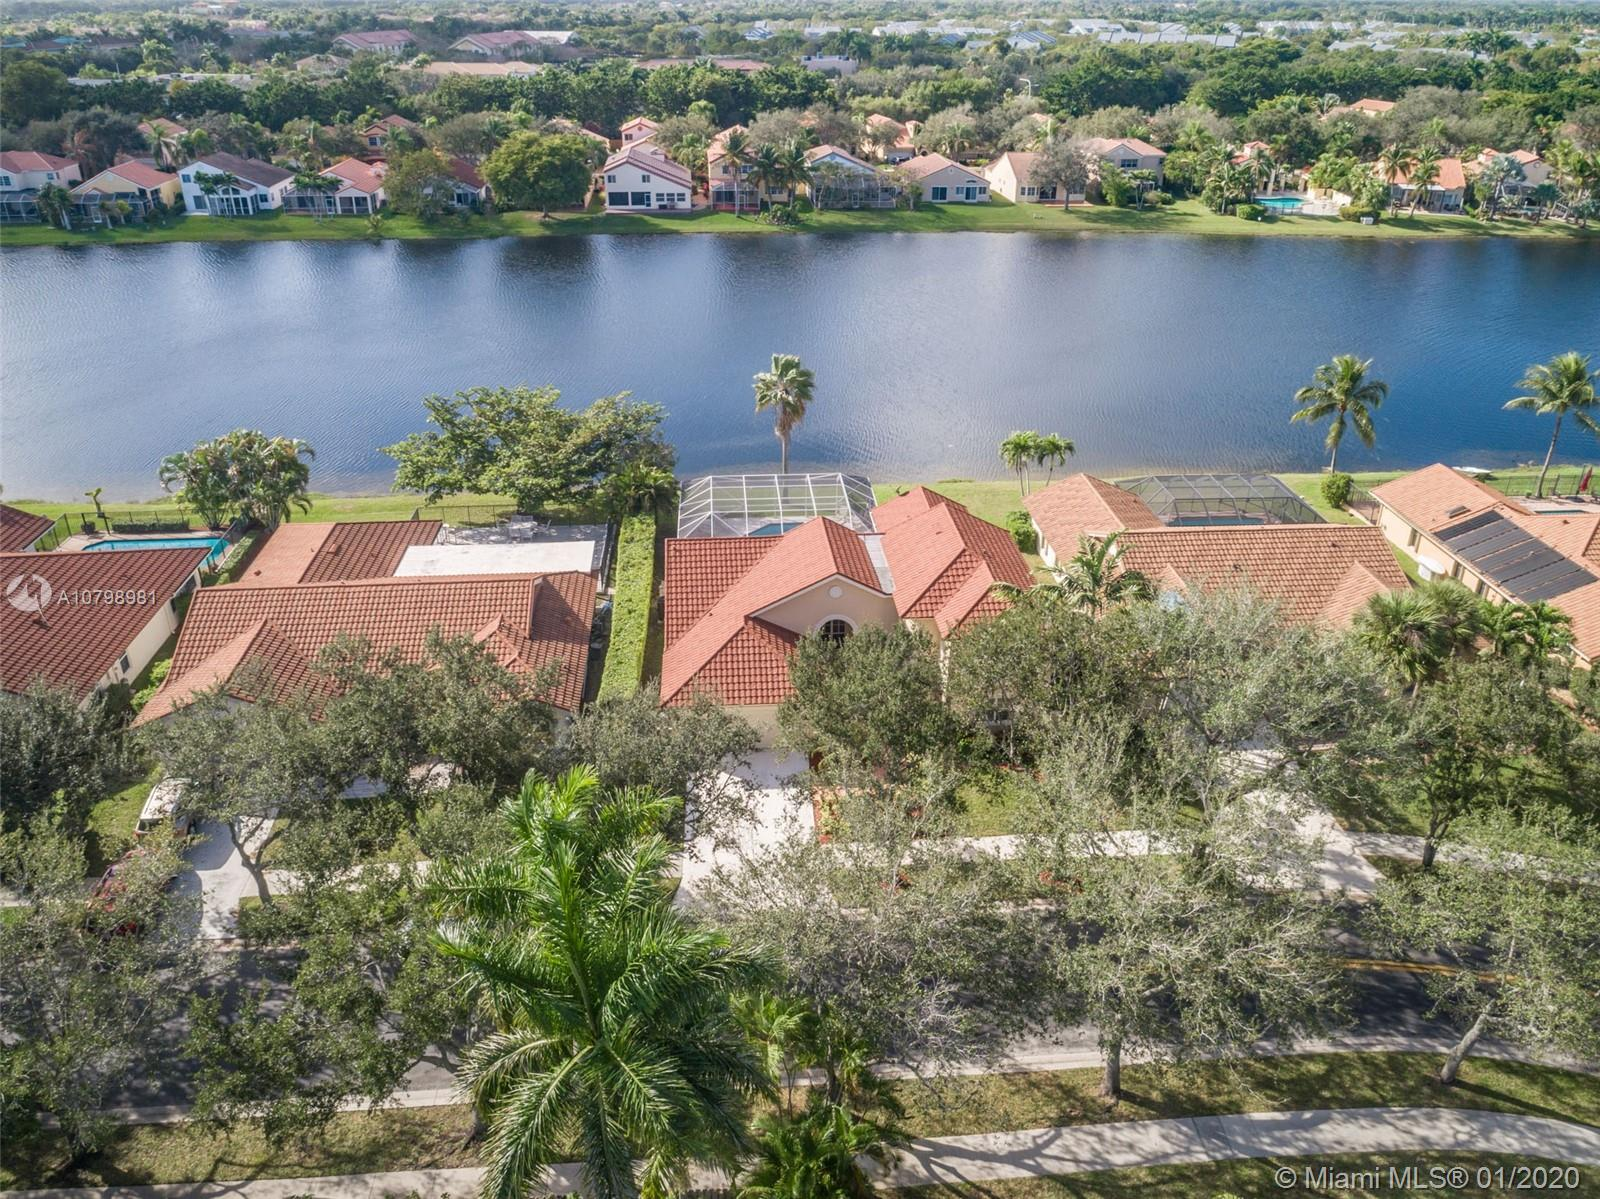 This is the one you have been waiting for.Enjoy spectacular lake views from your screened patio and pool w new diamond bright 2018.Marble flows t/o the living areas with open concept living&high ceilings/windows on water.Renovated white kitchen w oversized granite countertops, stone backsplash, Stainless steel appliances, pull outs, soft close cabinets, Lazy Susan, under cabinet lighting, integrated wine rack/ matching cabinetry in pantry/laundry room.Stainless steel appliances/Kitchen Aid.Master bedroom on first floor w access to patio/pool. Volume ceilings&plush carpet. Master bath w roman tub, dual sinks, shower & cabana door to patio.Secondary baths renovated with marble and seamless shower.Additional bedroom*den on first level.Second floor boasts two more spacious bedrooms plus bath.